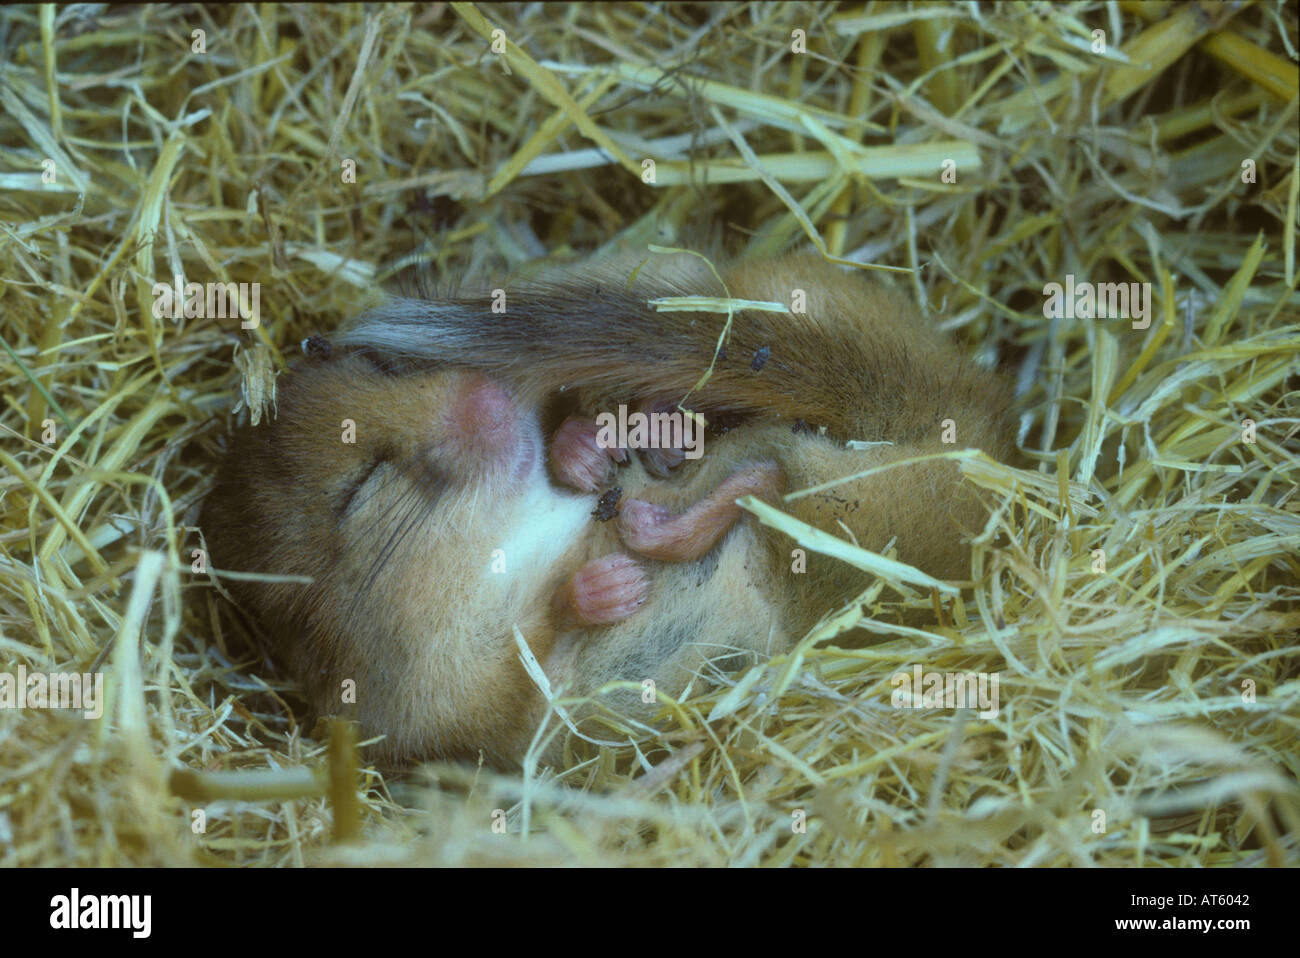 Dormouse hibernating in a stack of straw - Stock Image